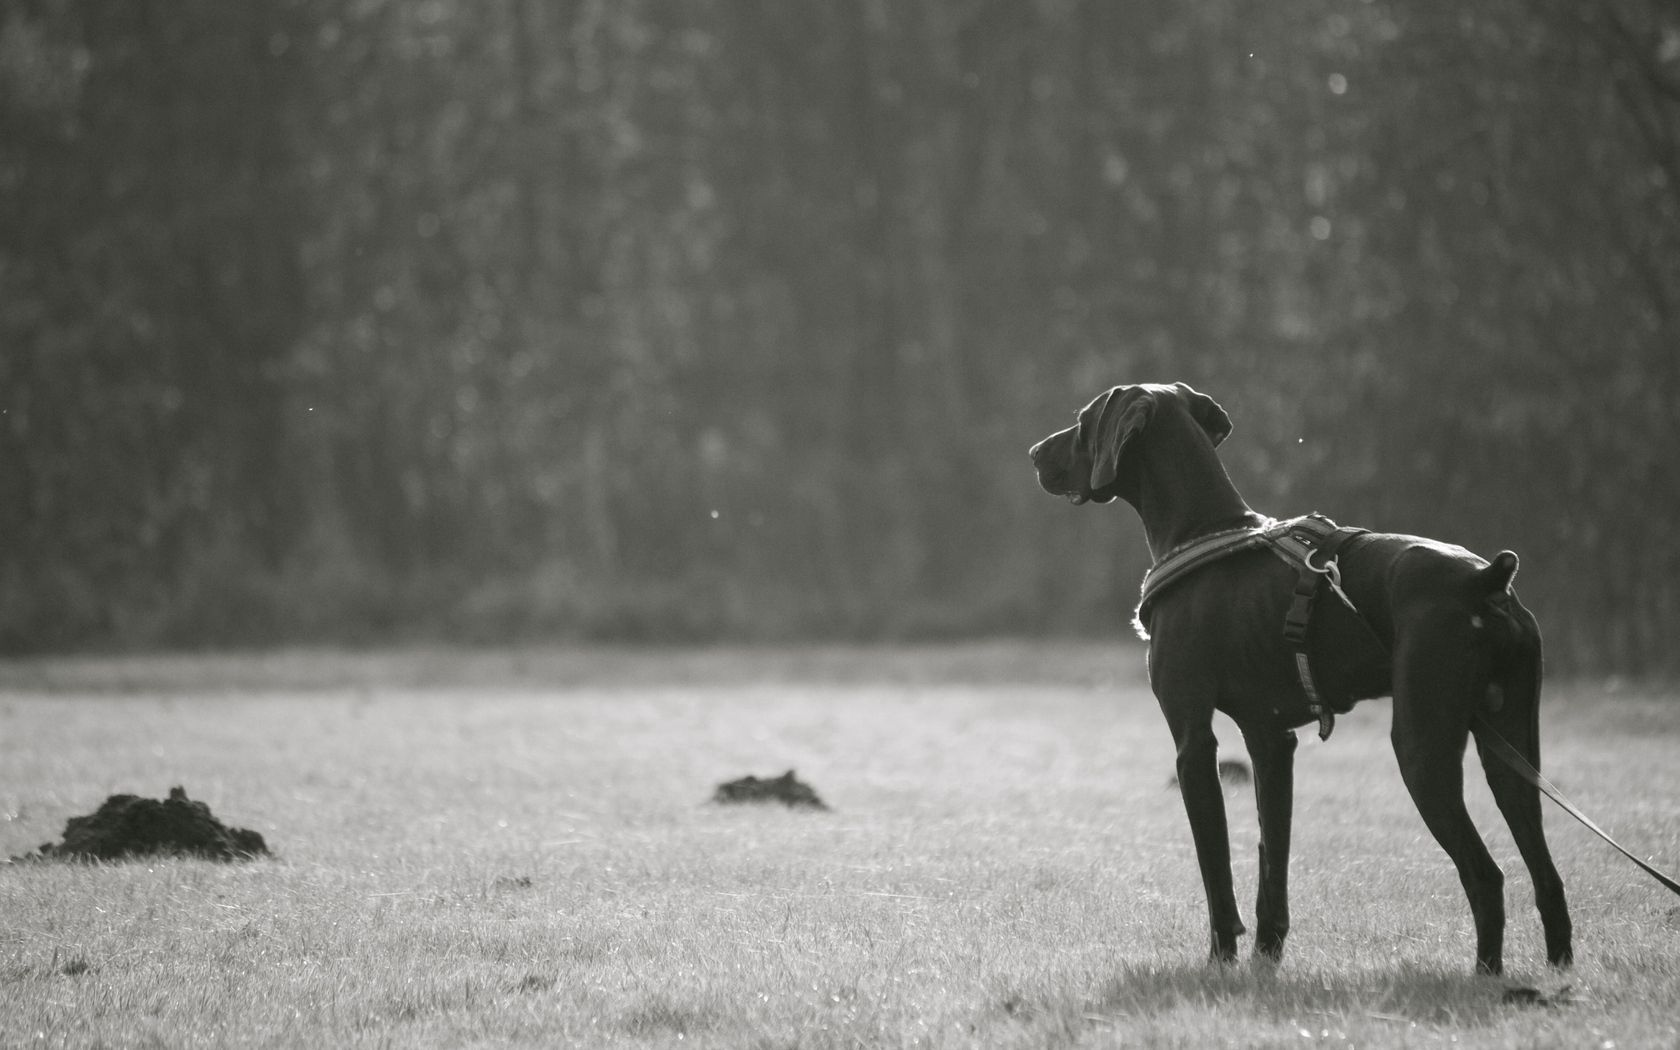 74239 download wallpaper Animals, Dog, Stroll, Breed, Dark, Bw, Chb screensavers and pictures for free